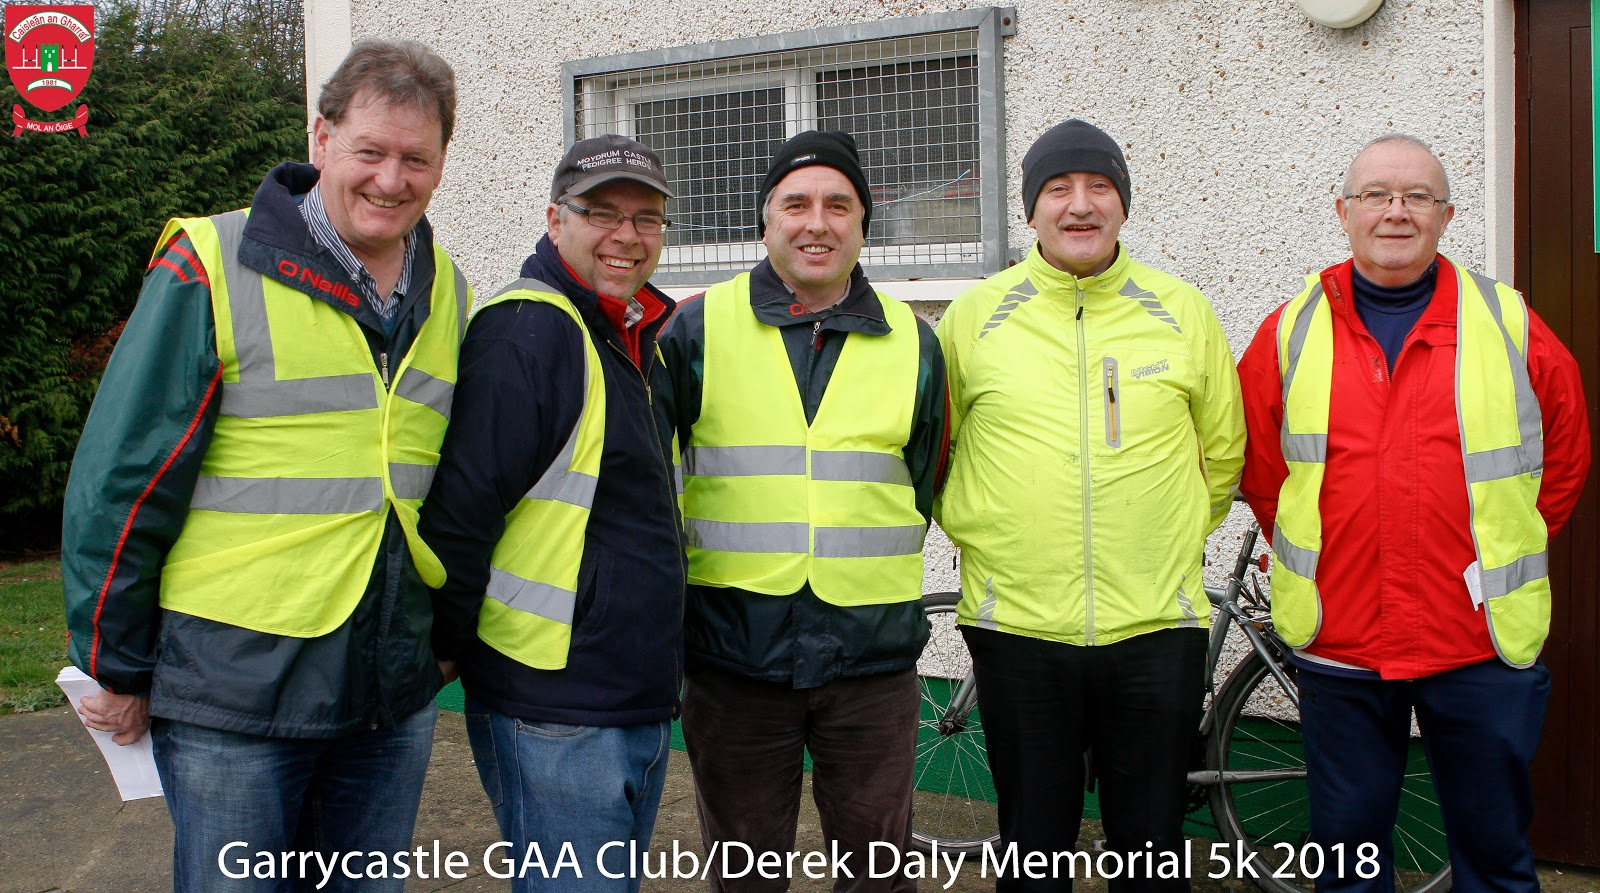 26/12/2018. Garrycastle GAA Club / Derek Daly Memorial 5k Walk/Run 2018.